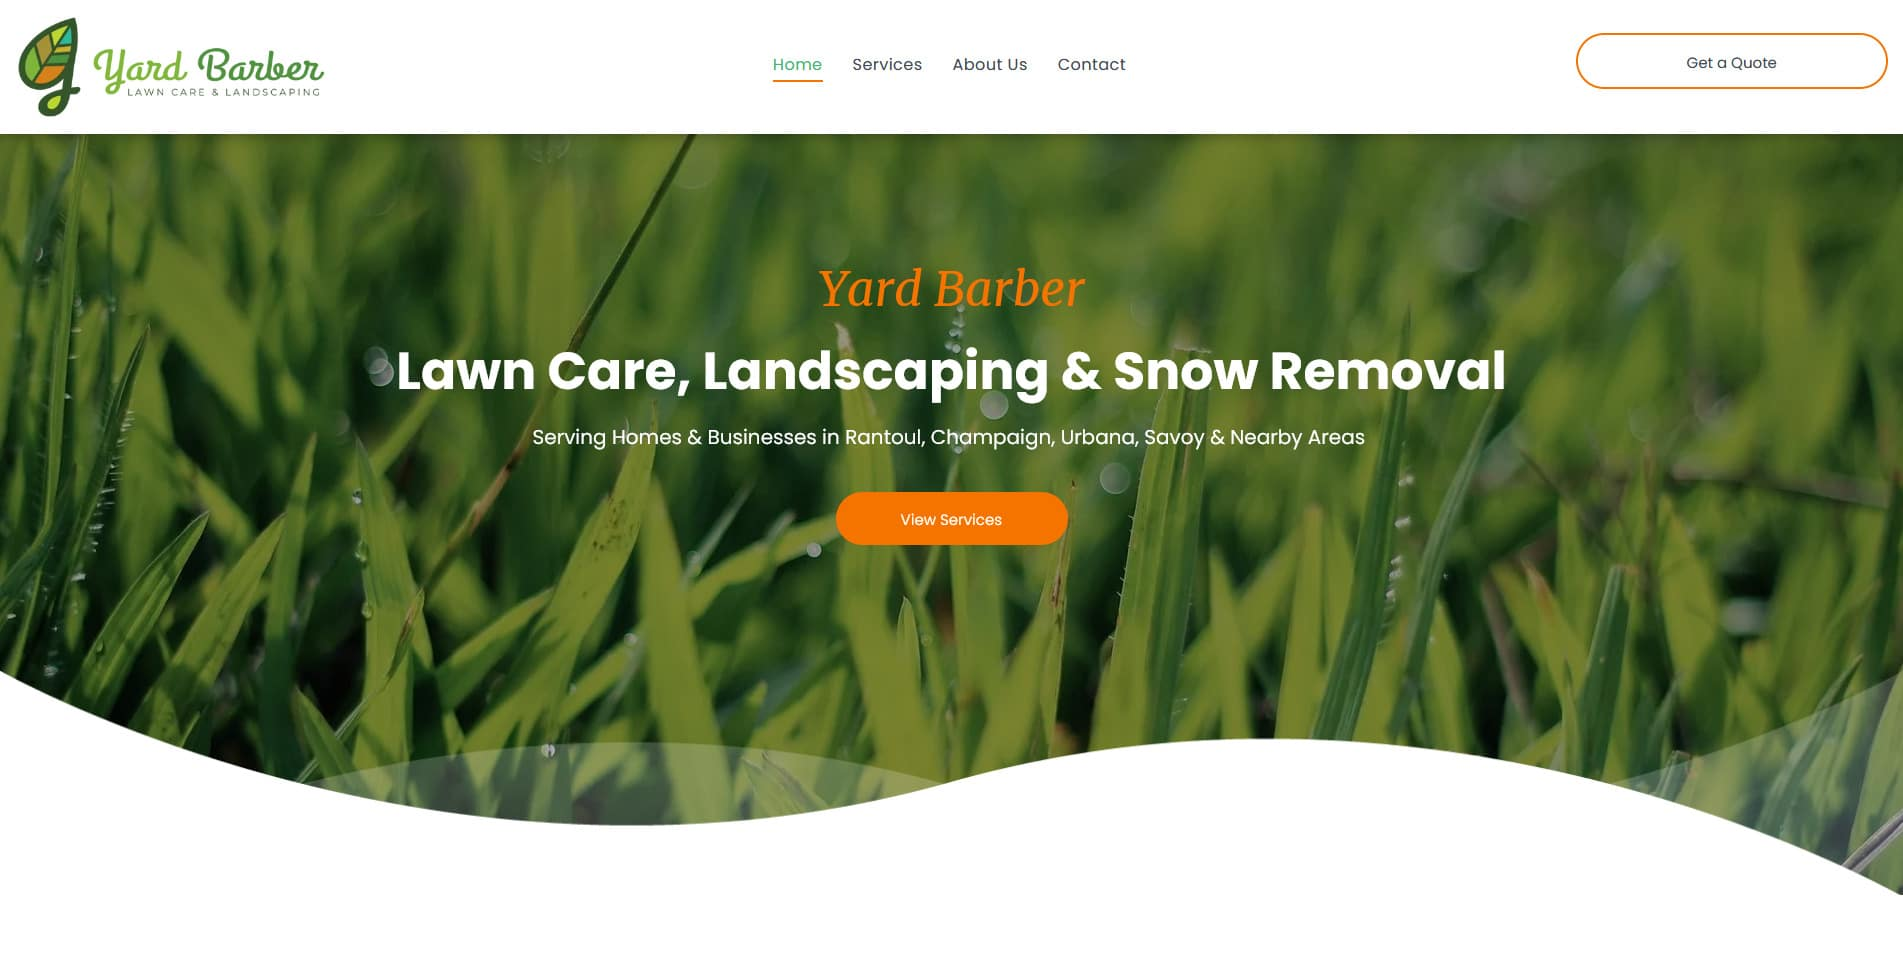 Yard Barber Lawn Care & Landscaping Rantoul, IL